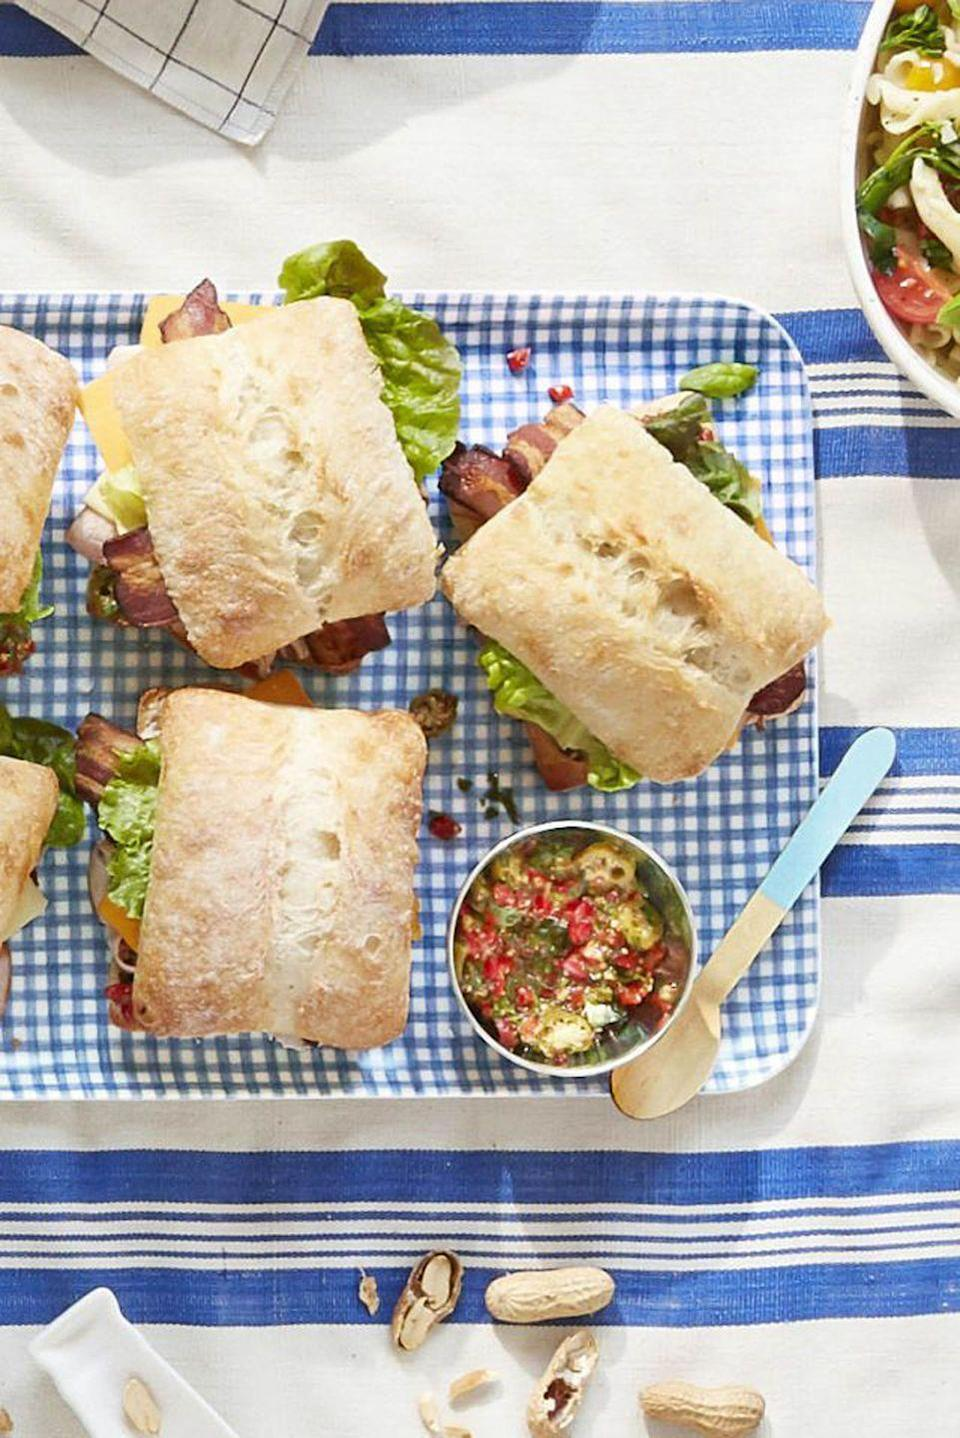 """<p>These sandwiches—filled with sharp cheddar cheese and turkey bacon—are the ideal size when you want a few bites but don't want to fill all the way up.</p><p><strong><a href=""""https://www.countryliving.com/food-drinks/recipes/a42460/pimiento-salad-club-sandwiches-recipe/?visibilityoverride"""" rel=""""nofollow noopener"""" target=""""_blank"""" data-ylk=""""slk:Get the recipe"""" class=""""link rapid-noclick-resp"""">Get the recipe</a>.</strong></p><p><a class=""""link rapid-noclick-resp"""" href=""""https://www.amazon.com/Classic-Gingham-Serving-Handles-Serveware/dp/B00ZDVHLZI/?tag=syn-yahoo-20&ascsubtag=%5Bartid%7C10050.g.3290%5Bsrc%7Cyahoo-us"""" rel=""""nofollow noopener"""" target=""""_blank"""" data-ylk=""""slk:SHOP TRAYS"""">SHOP TRAYS</a> </p>"""